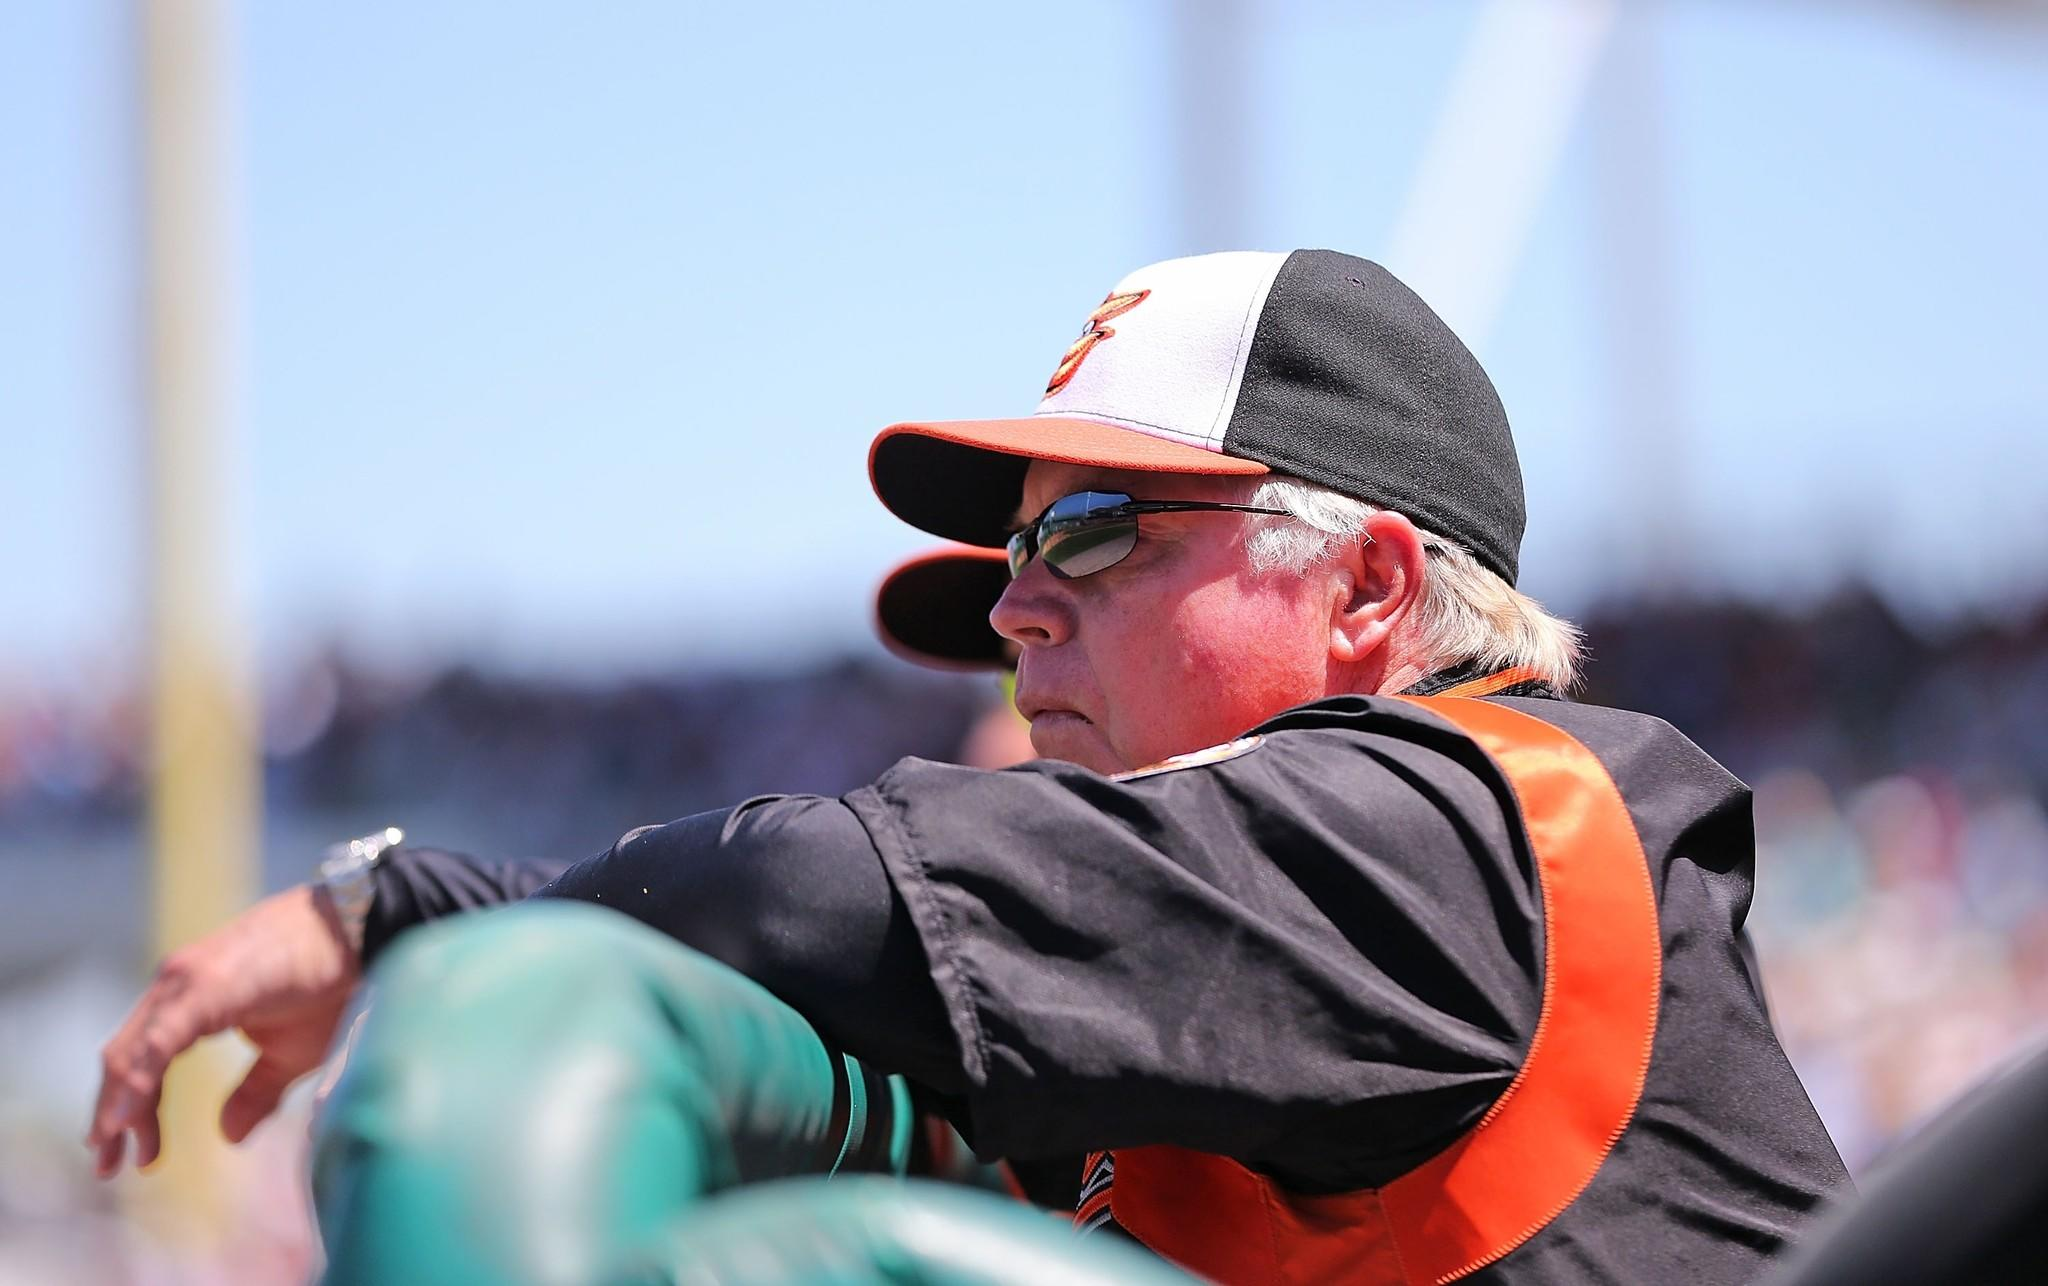 Orioles manager Buck Showalter watches the action during a game against the Boston Red Sox at JetBlue Park.